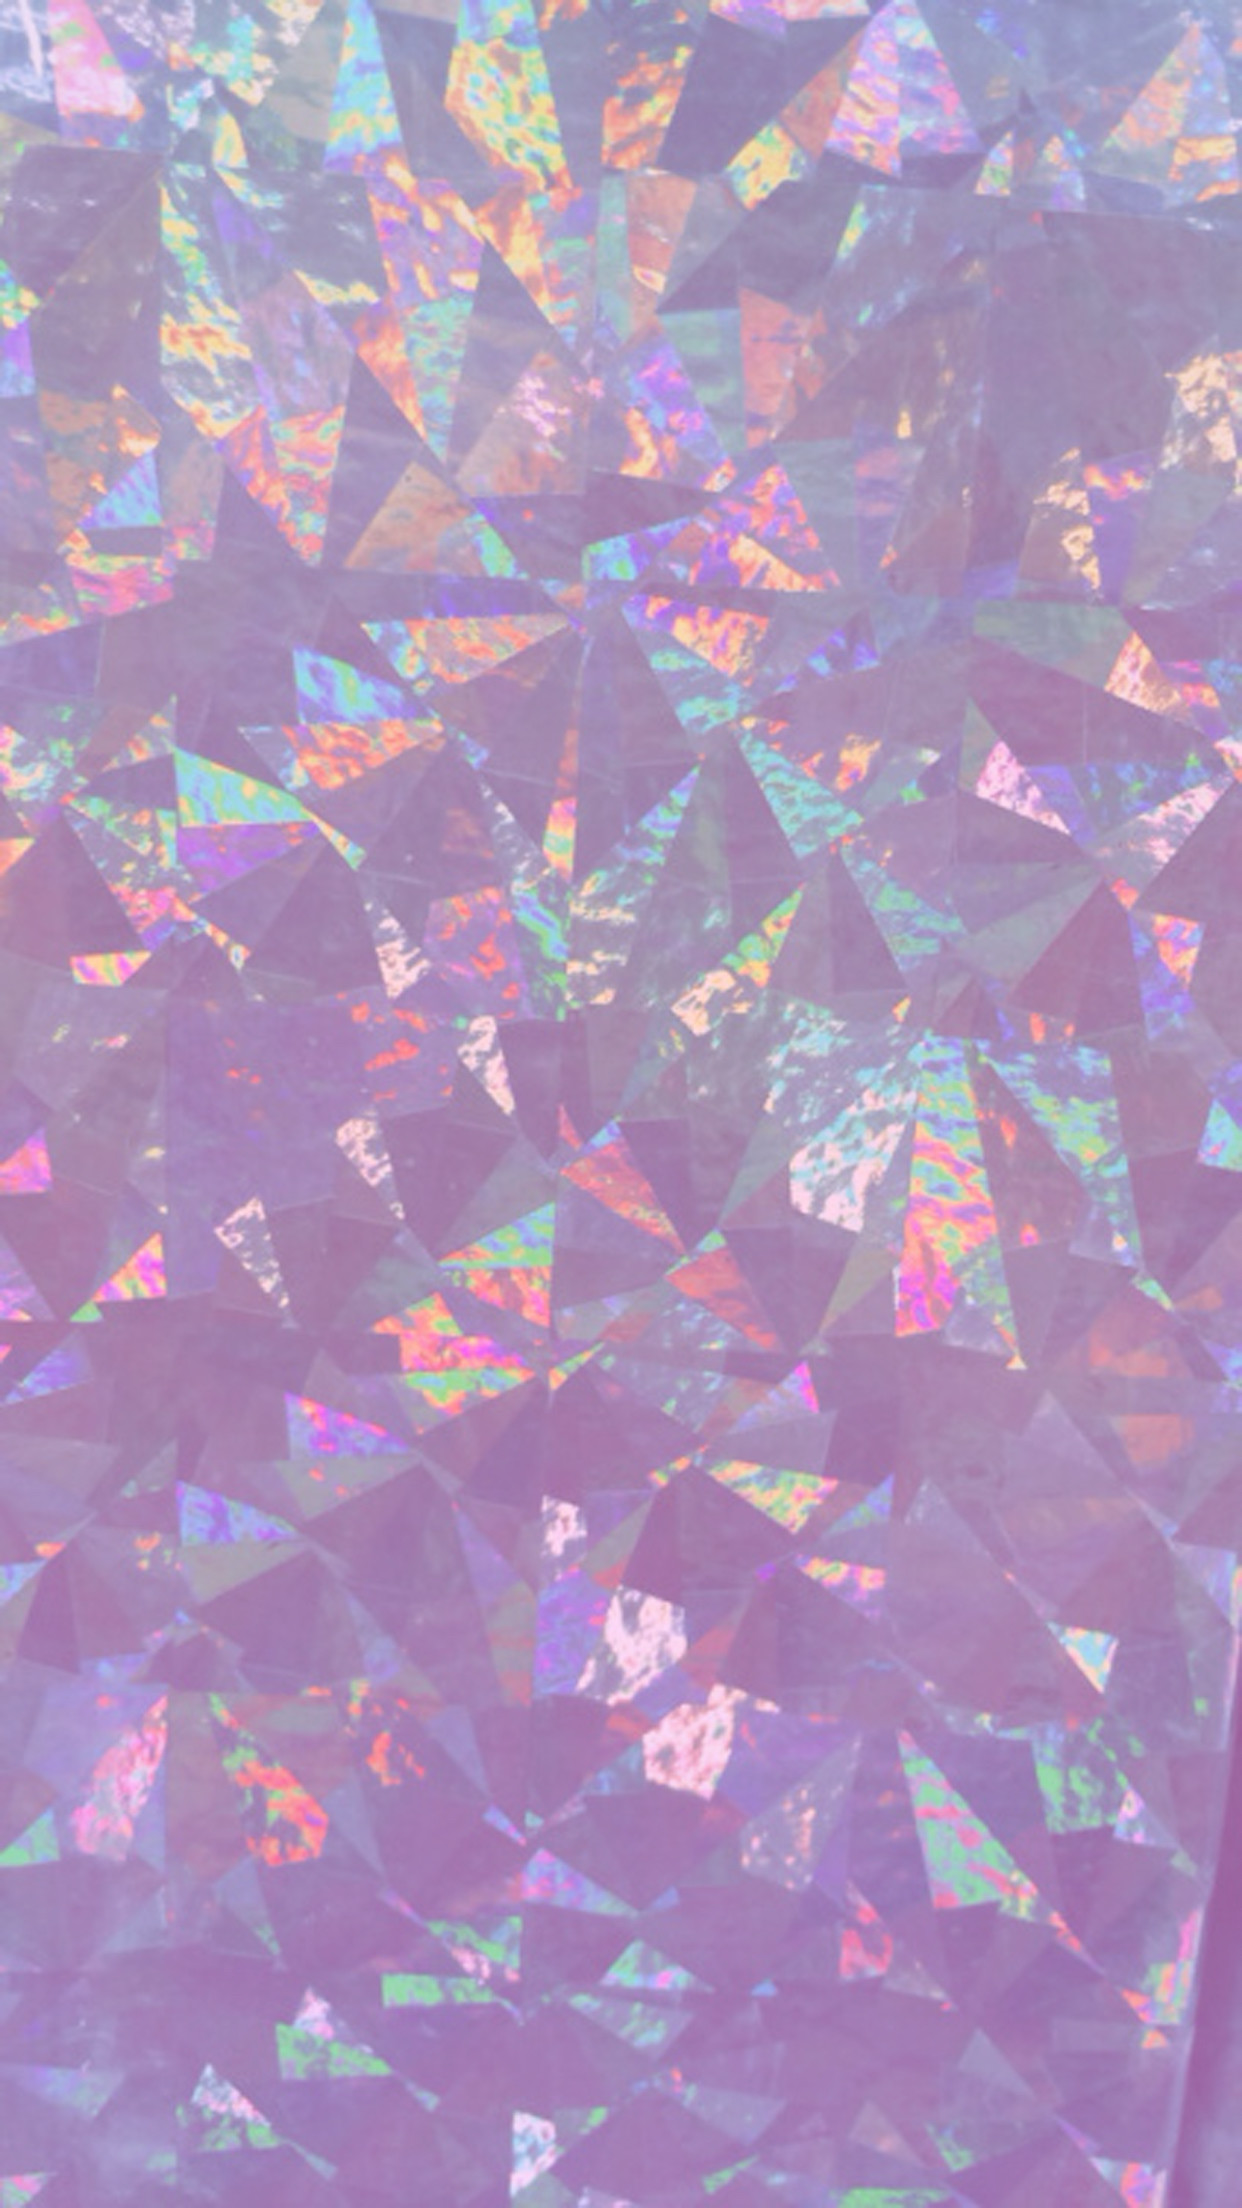 Iridescent Holographic Wallpaper, iPhone, Android, HD, Background, Pink,  Purple,